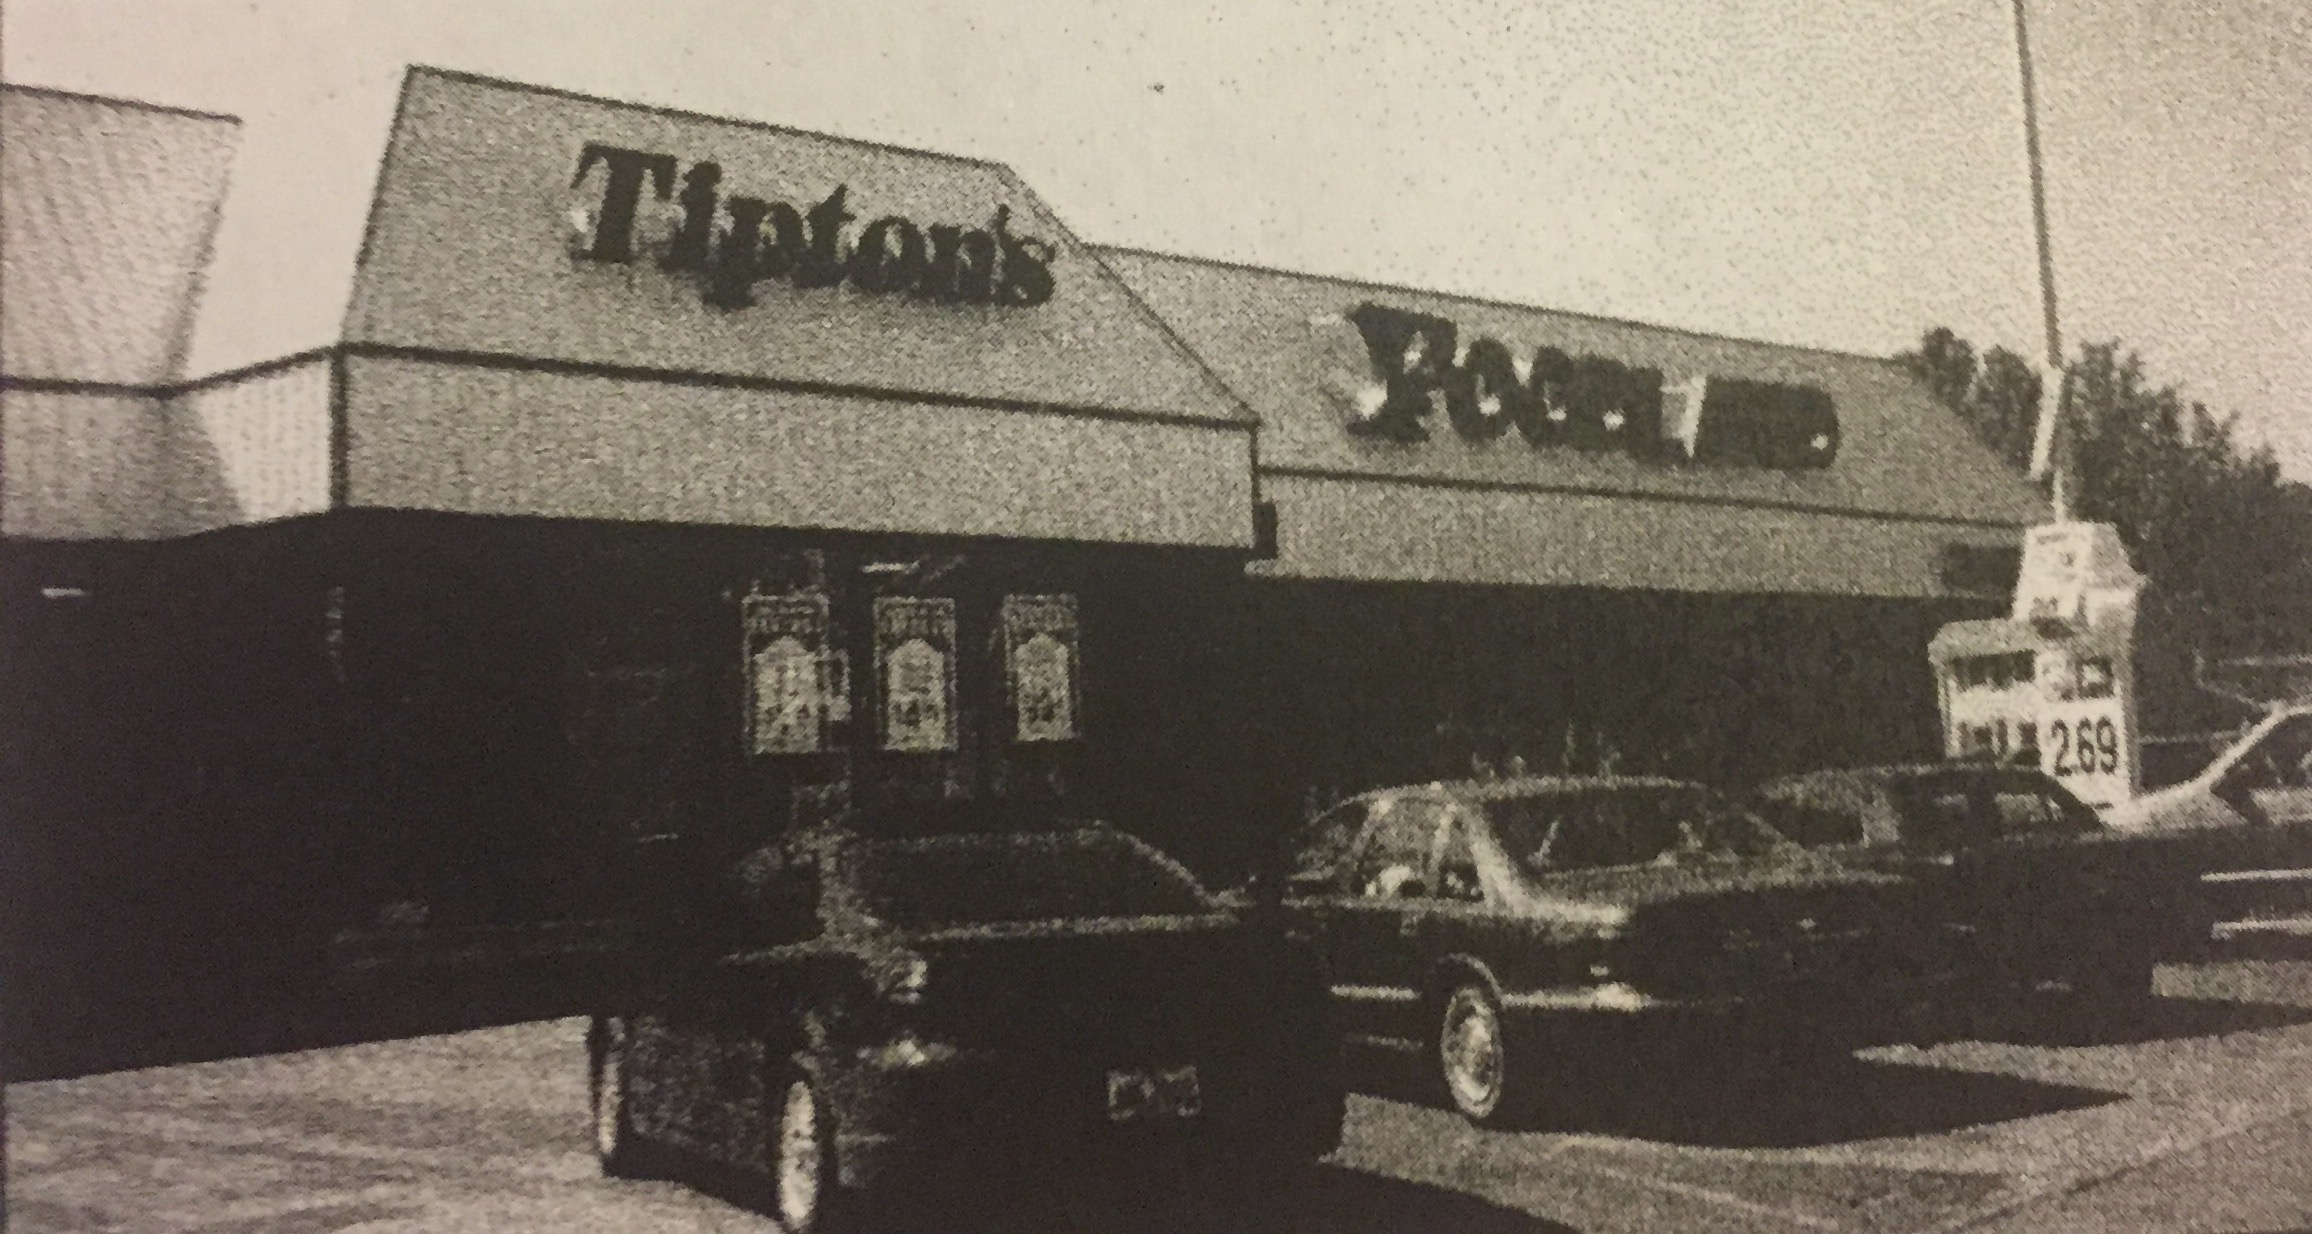 Tipton's Bakery in 1955